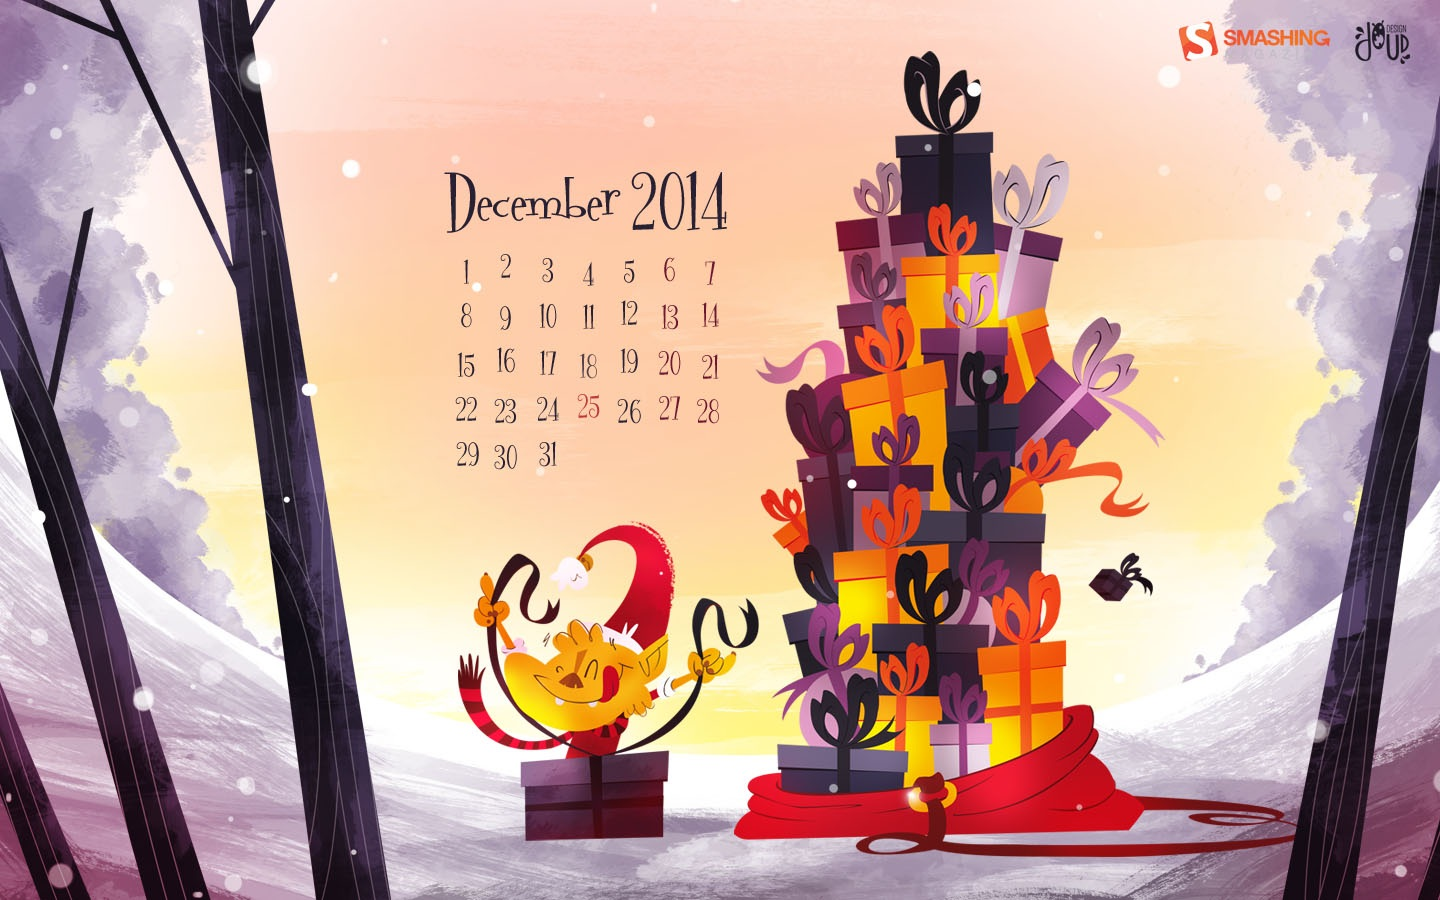 In January Calendar Wallpaper 51176